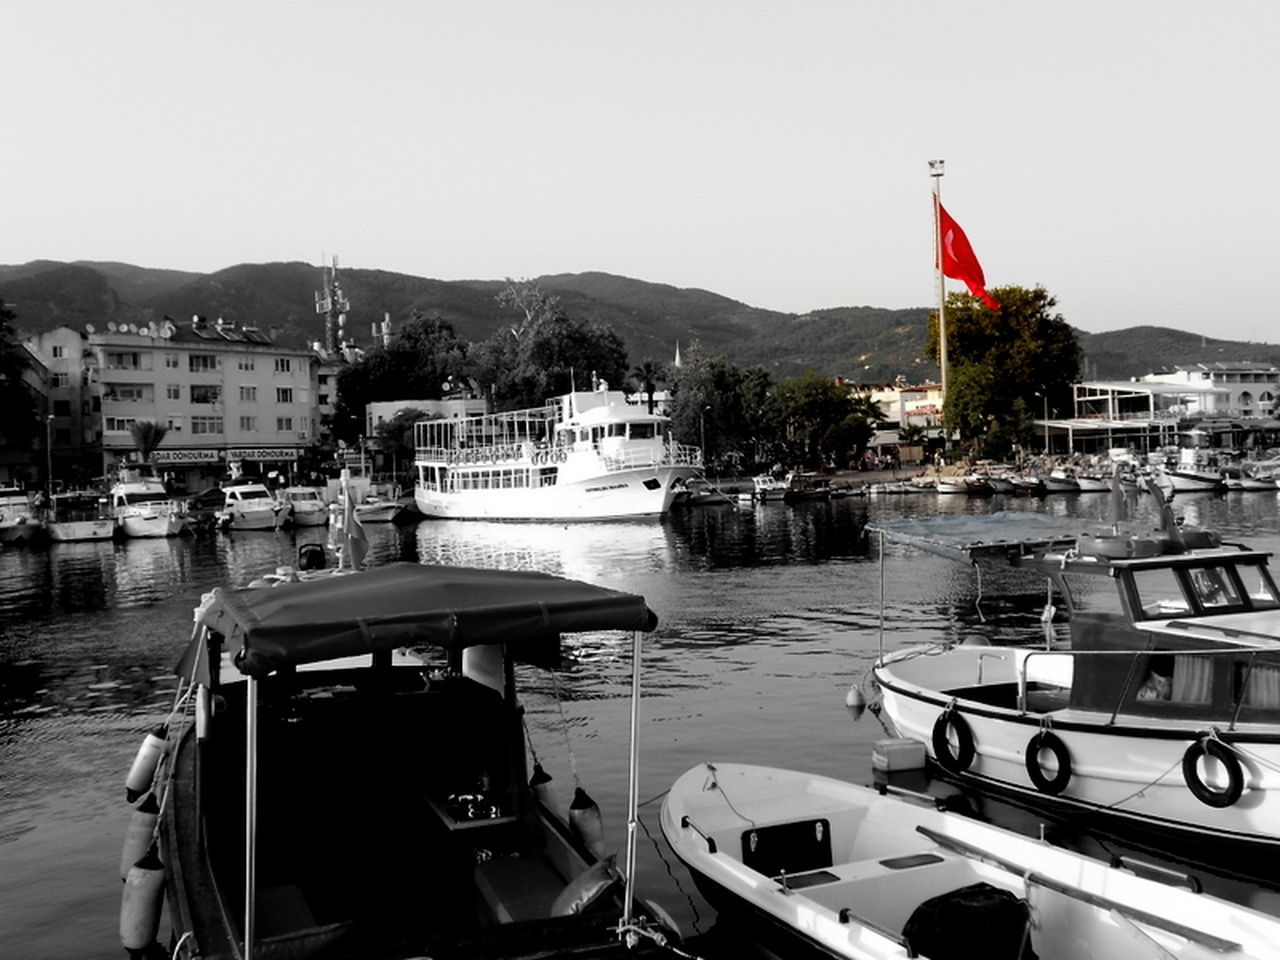 #beautiful Flowers #boats Big And Small #FLAG OF TURKEY #harbour #nice #red #TURKEY/Balıkesir-Altınoluk #white-black-r